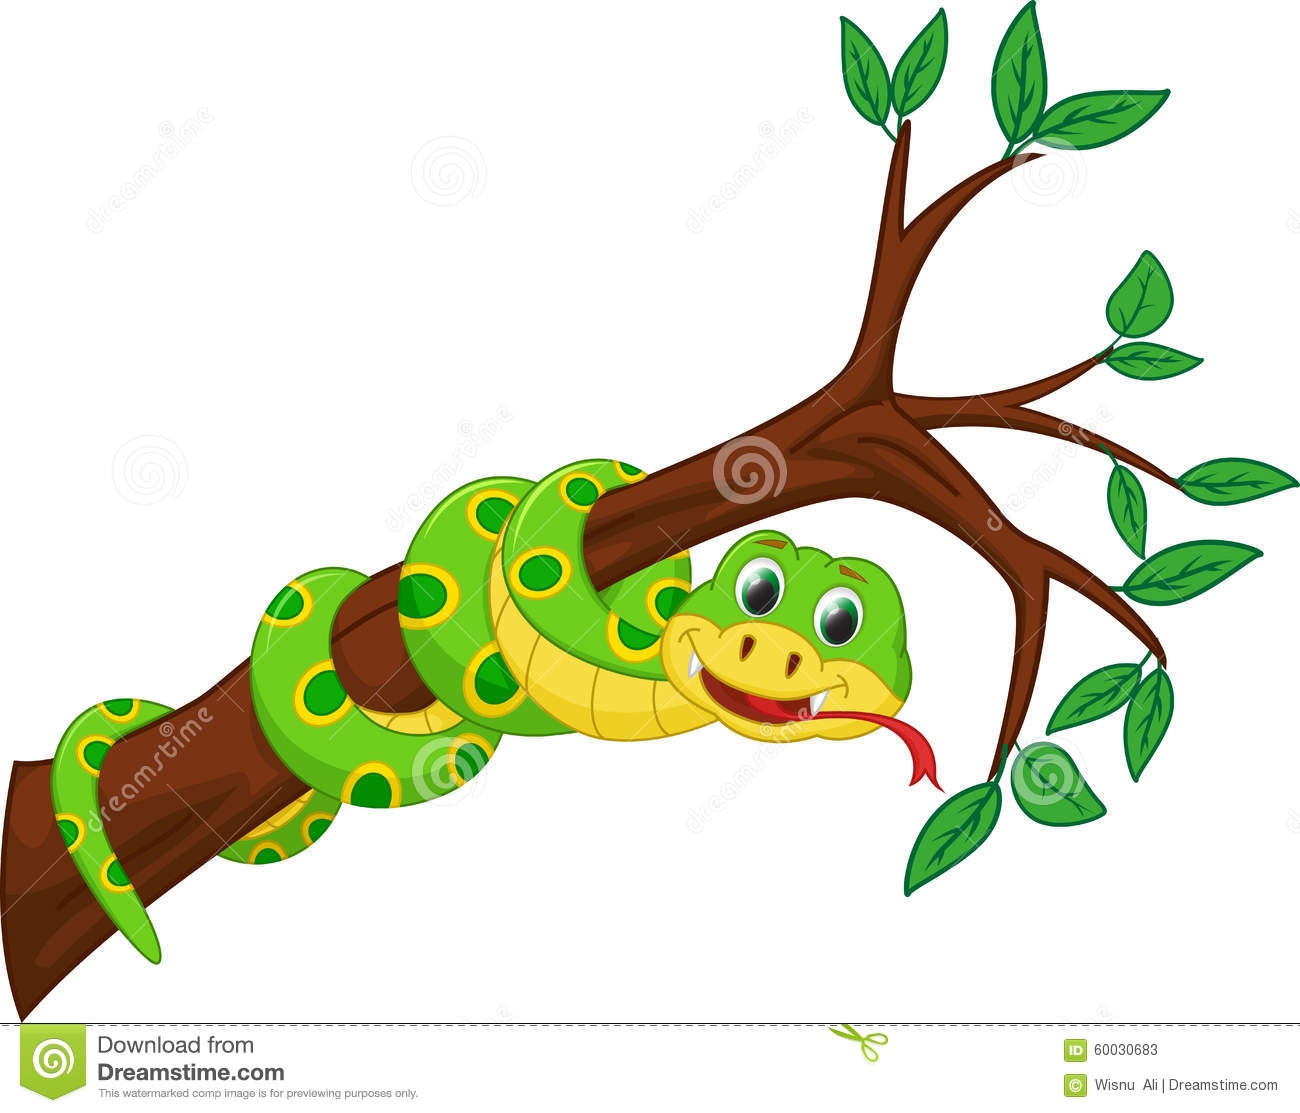 Illustration of cute snake cartoon on branch isolated on white.